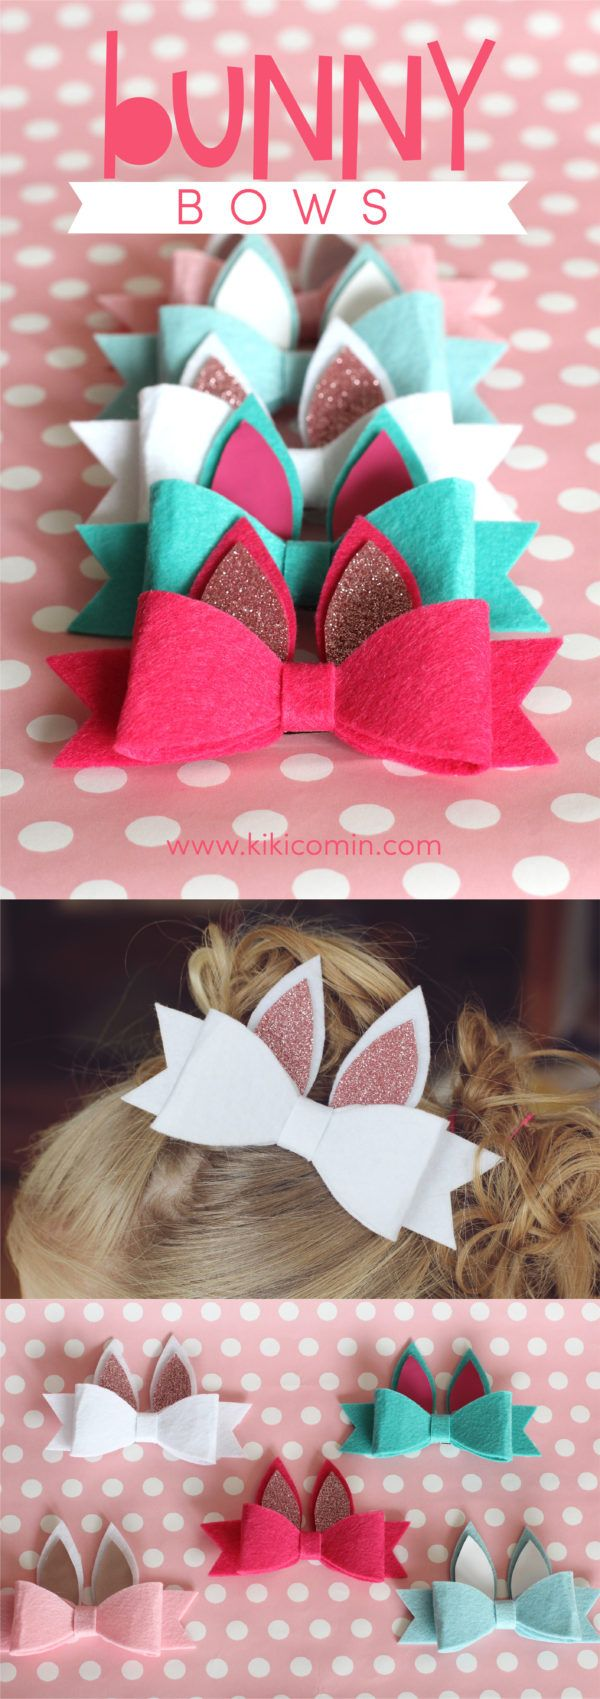 Easter is right around the corner and with these Bunny Bows made with Expression...